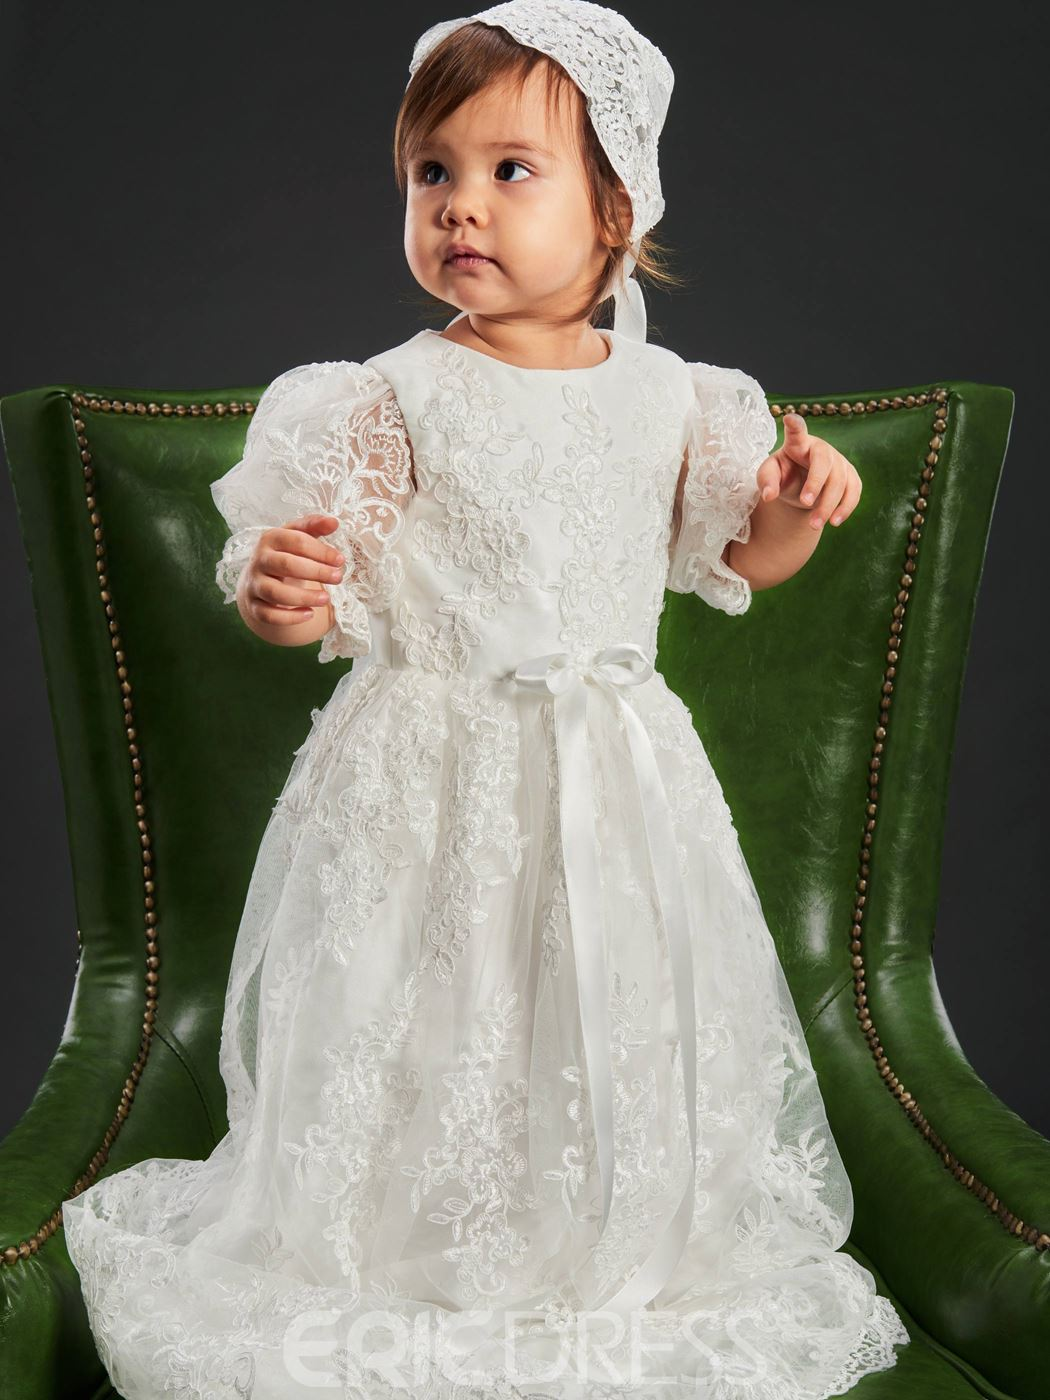 Ericdress Long Beautiful Lace Christening Gown for Girls Baptism